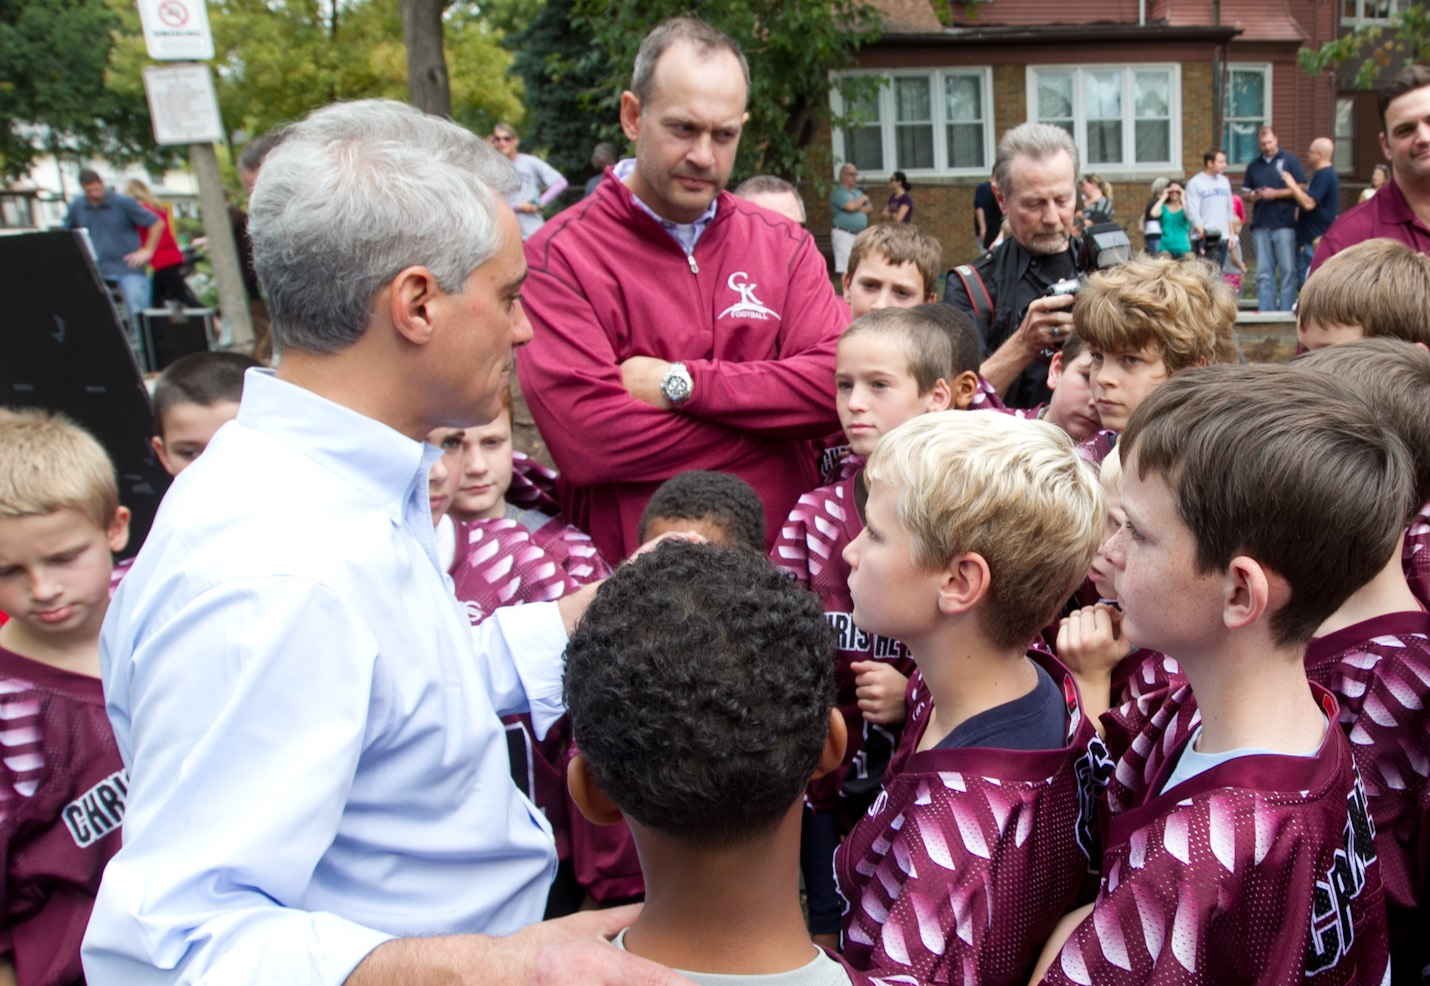 Mayor Rahm Emanuel greets youth athletes at Ridge Park to highlight what will be a completely rehabilitated playground as part of the Chicago Plays! Playground Renovation Program.